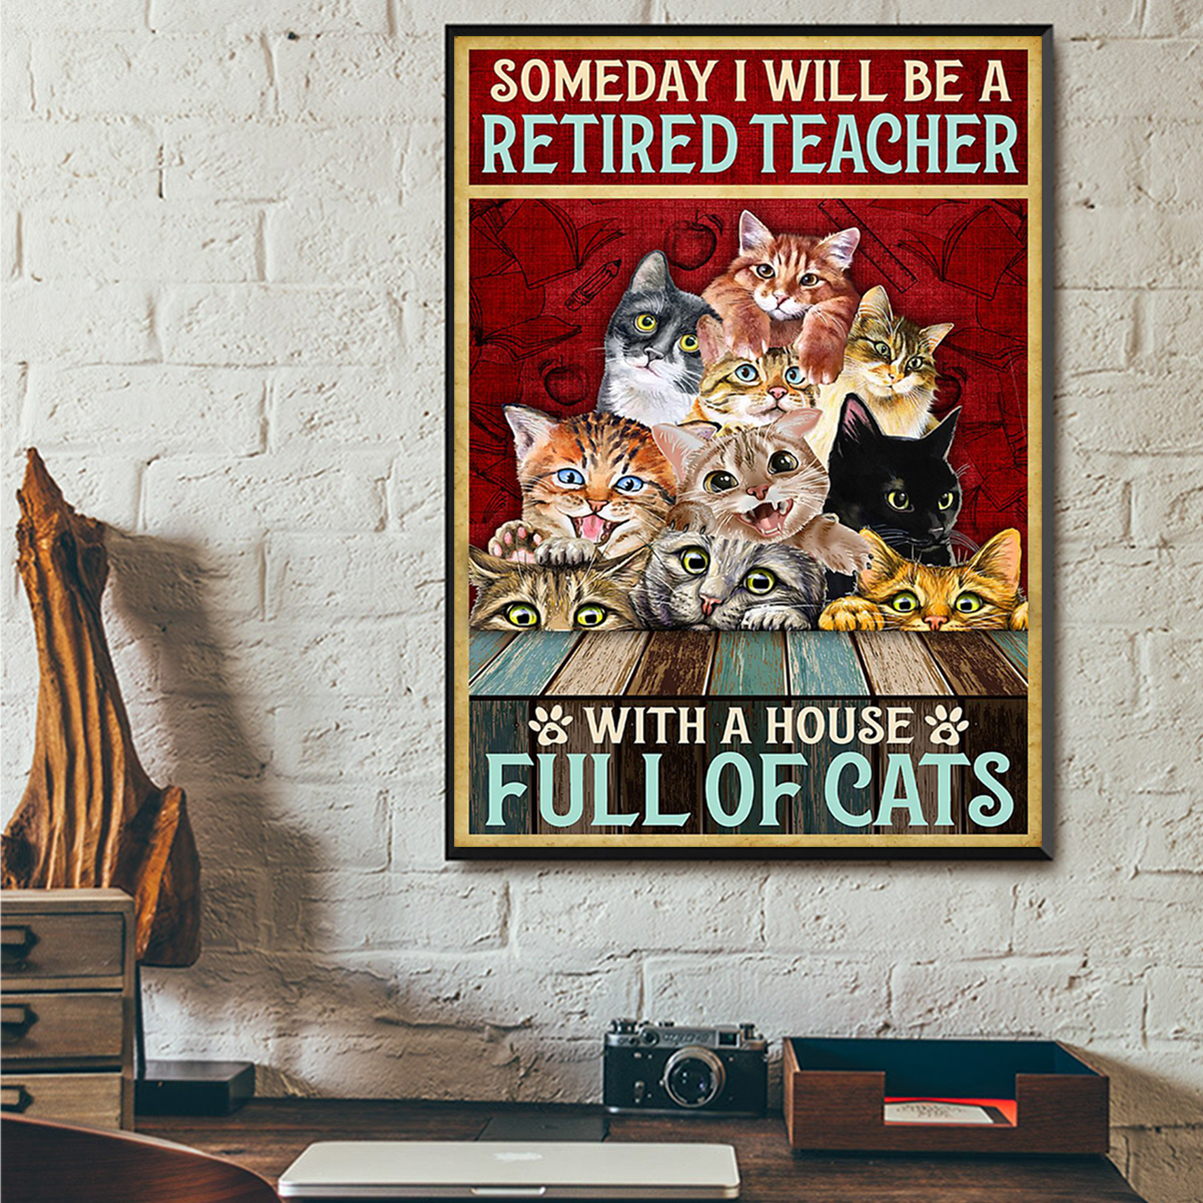 Someday I will be a retired teacher with a house full of cats poster A1